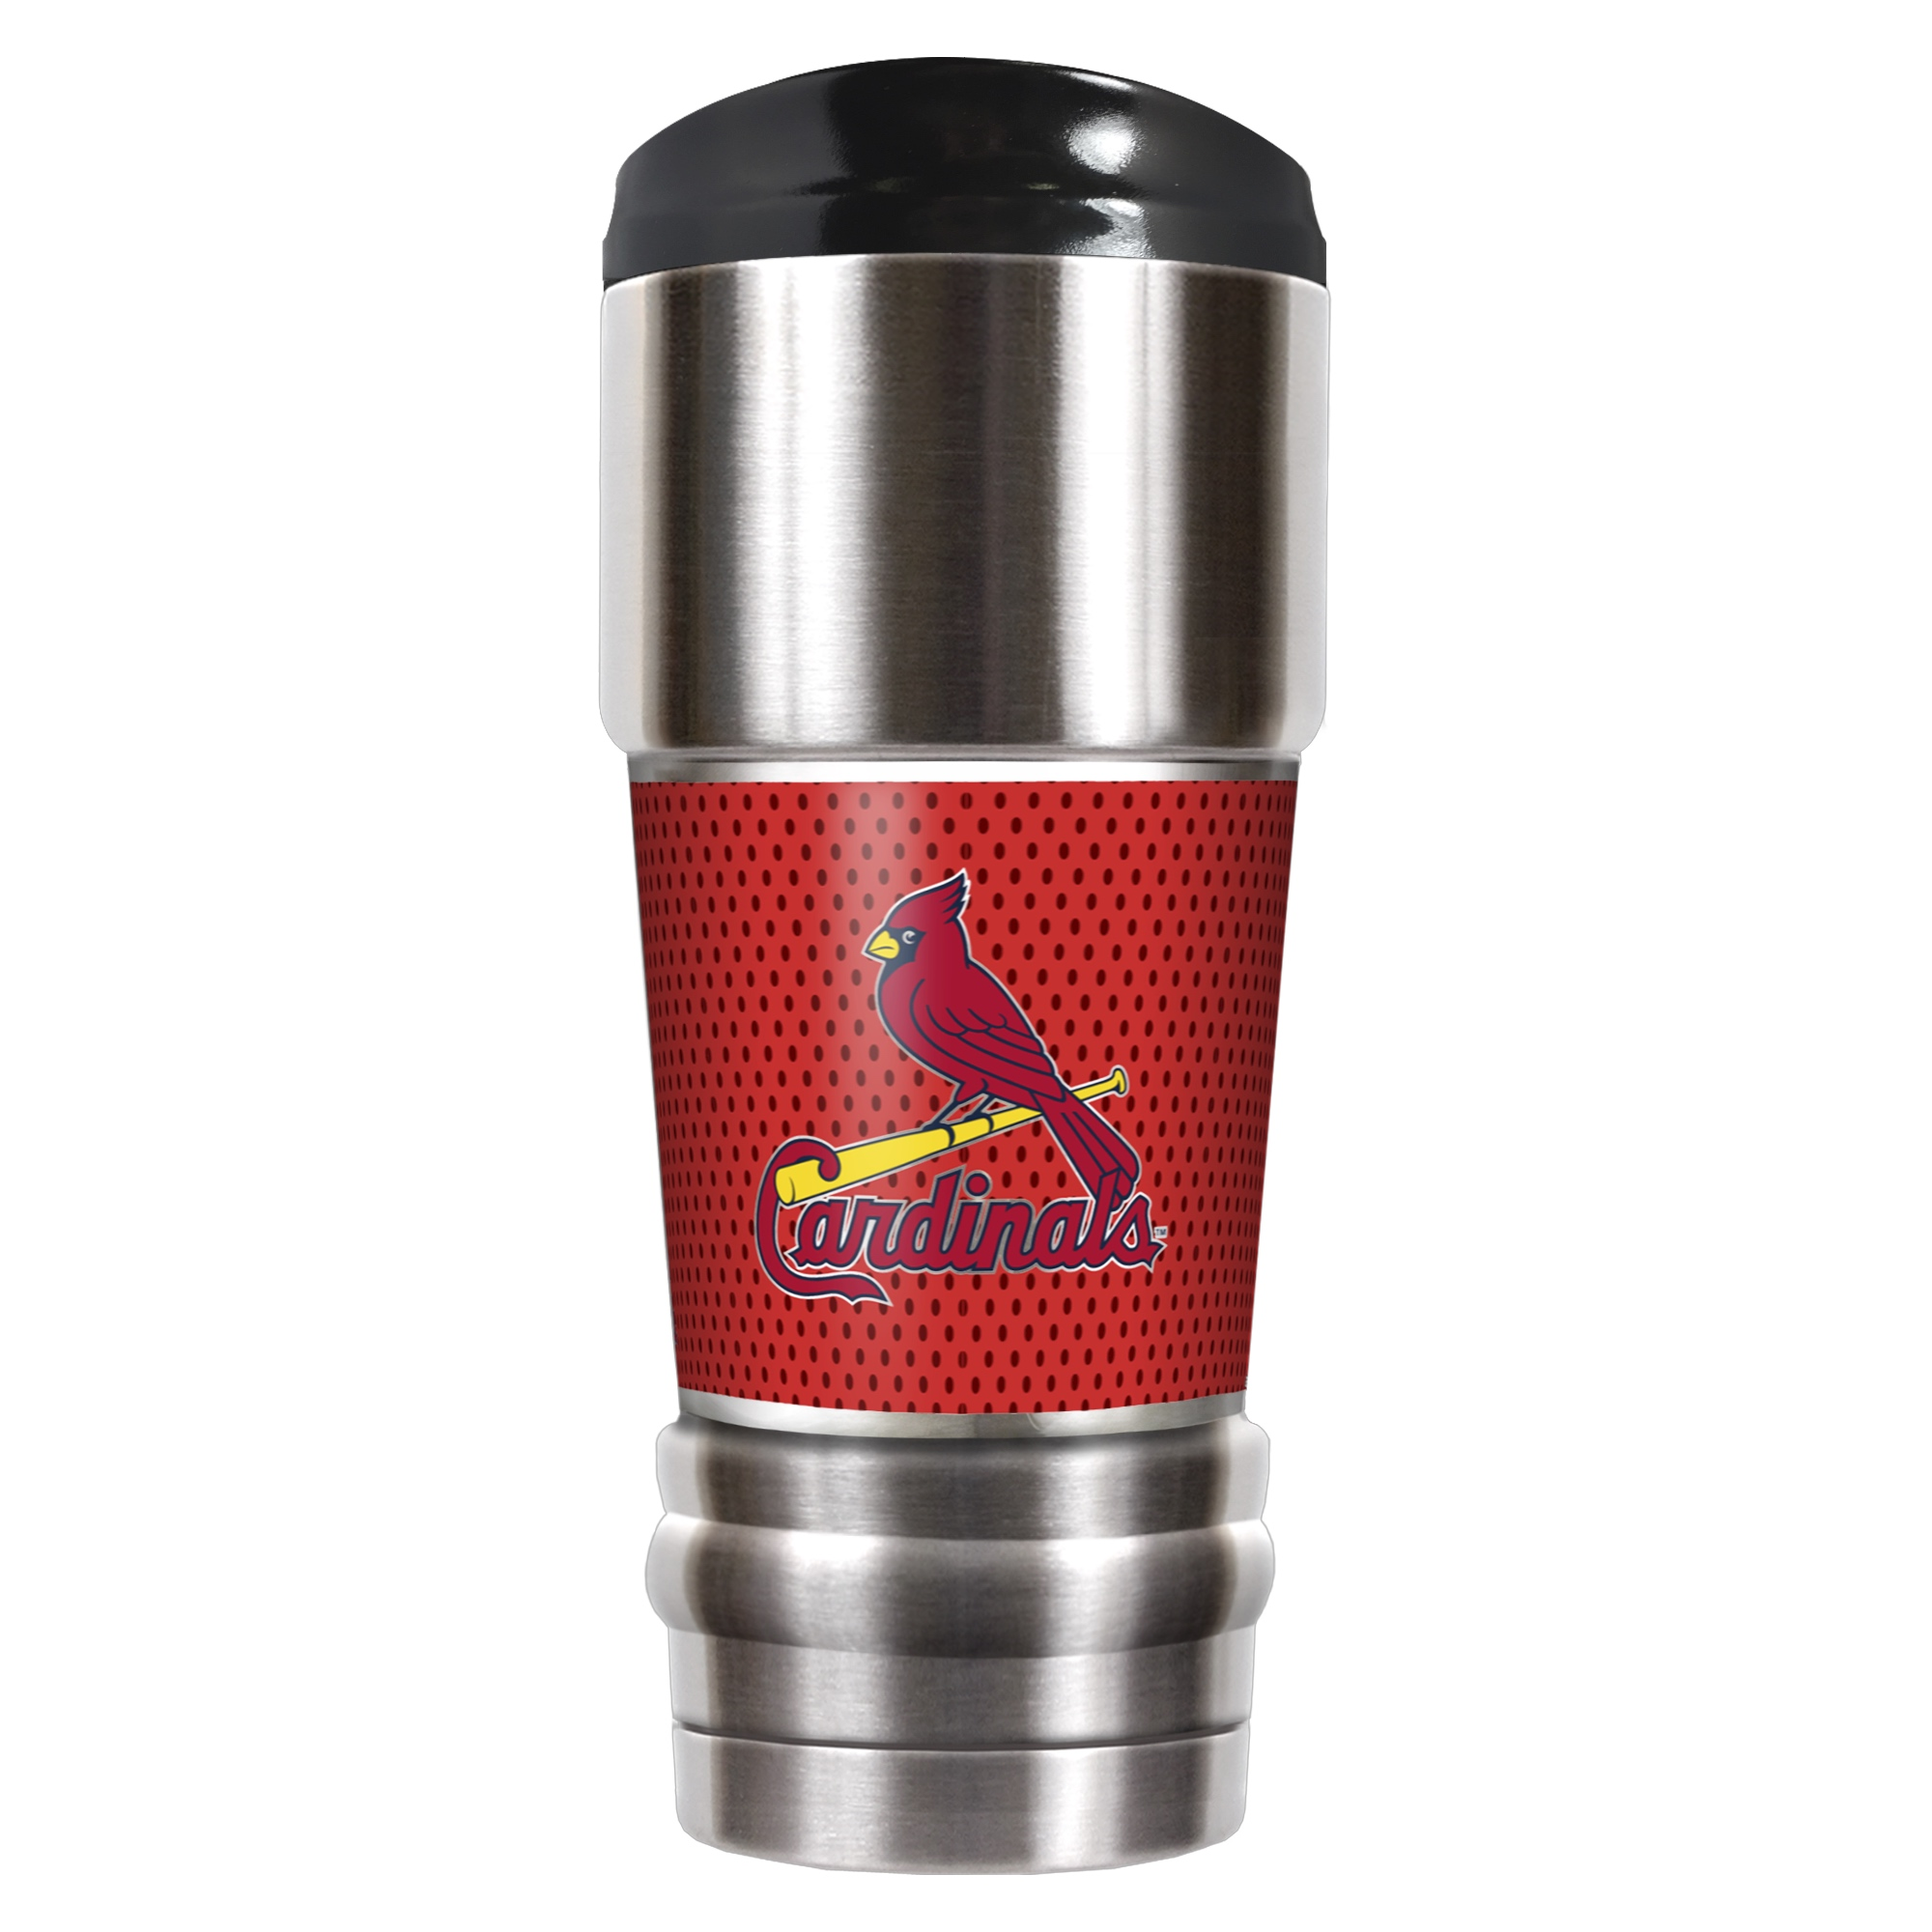 St. Louis Cardinals 2018 Players' Weekend 18oz. Vacuum-Insulated Travel Mug - No Size